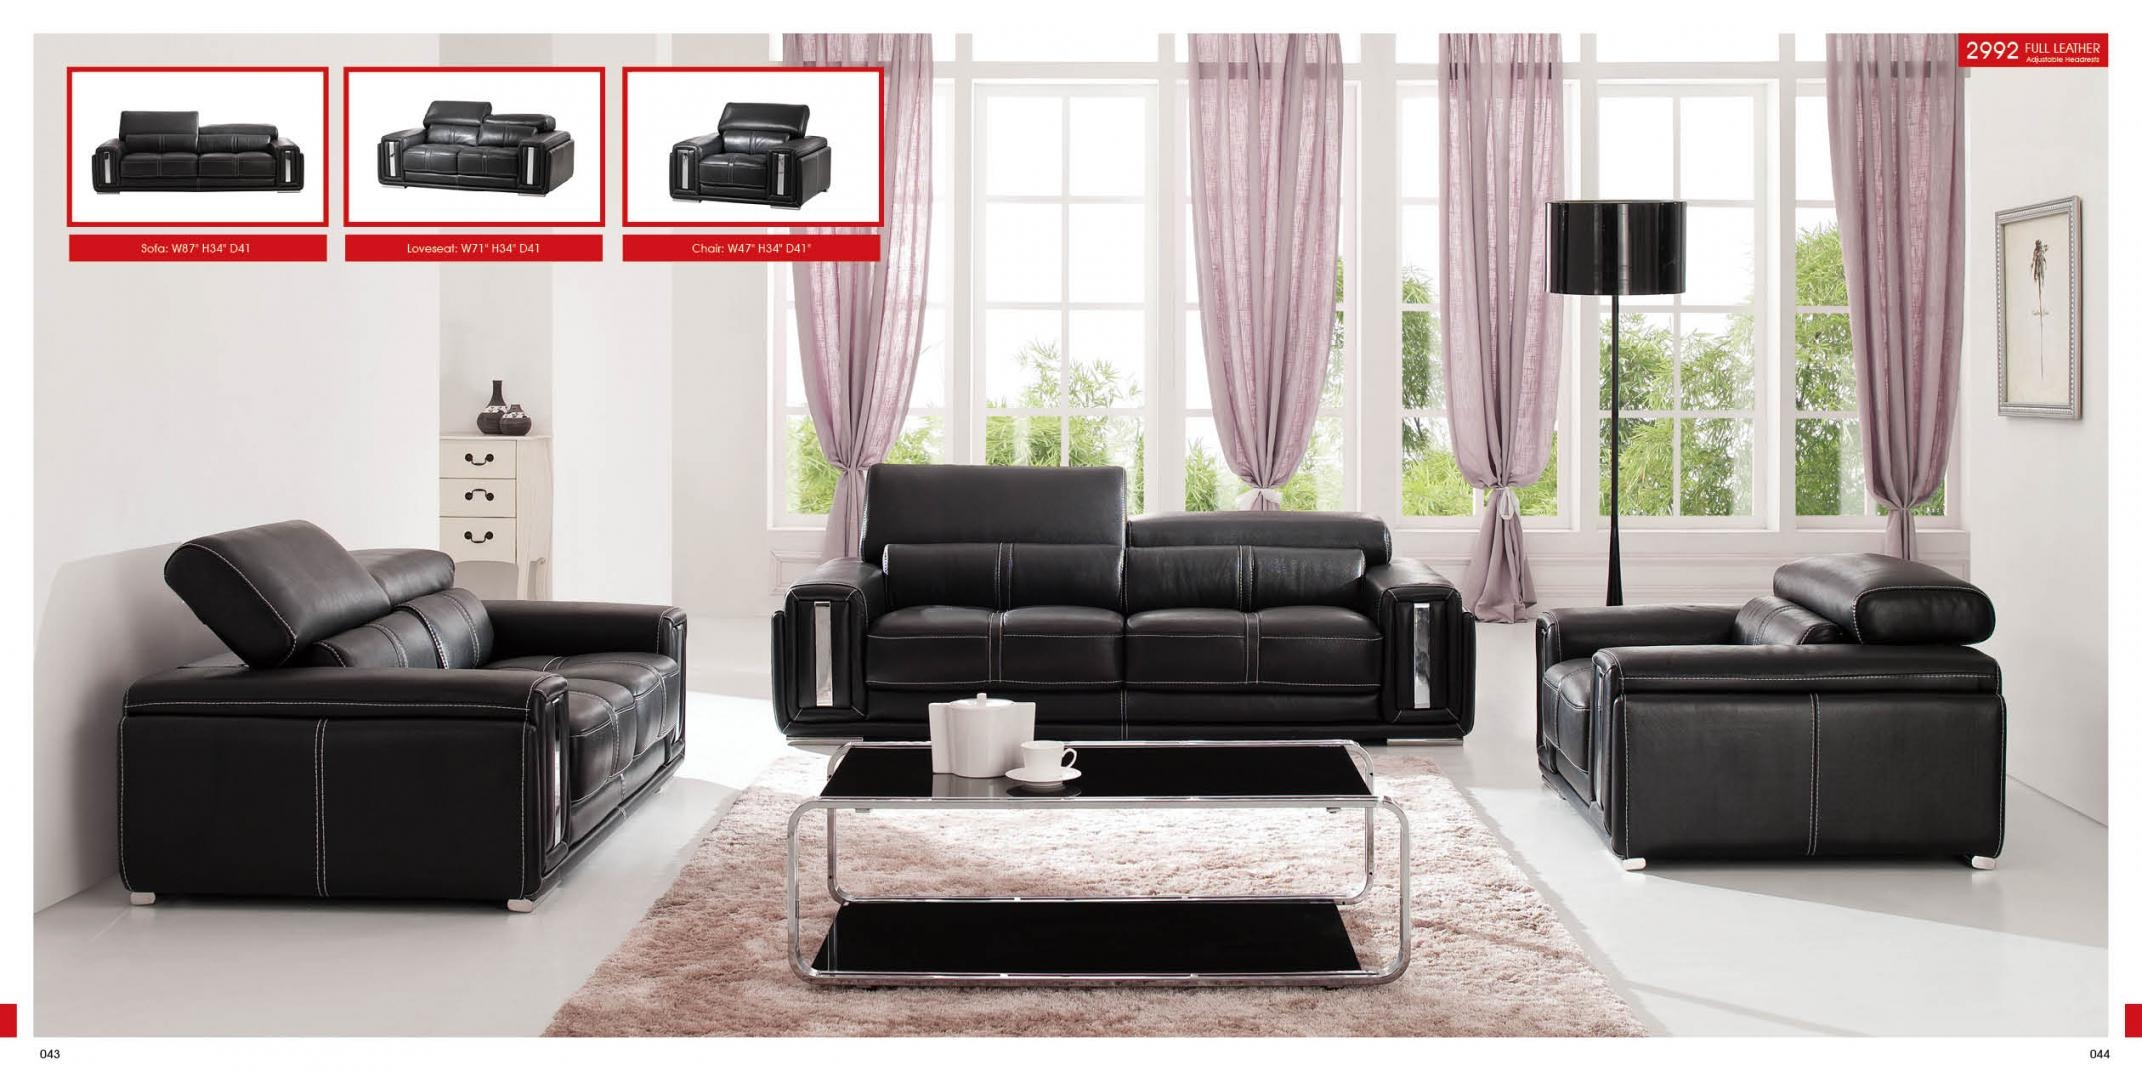 Modern Style Living Room Furniture Intended For Living Room Sofa And Chair Sets (Image 15 of 20)